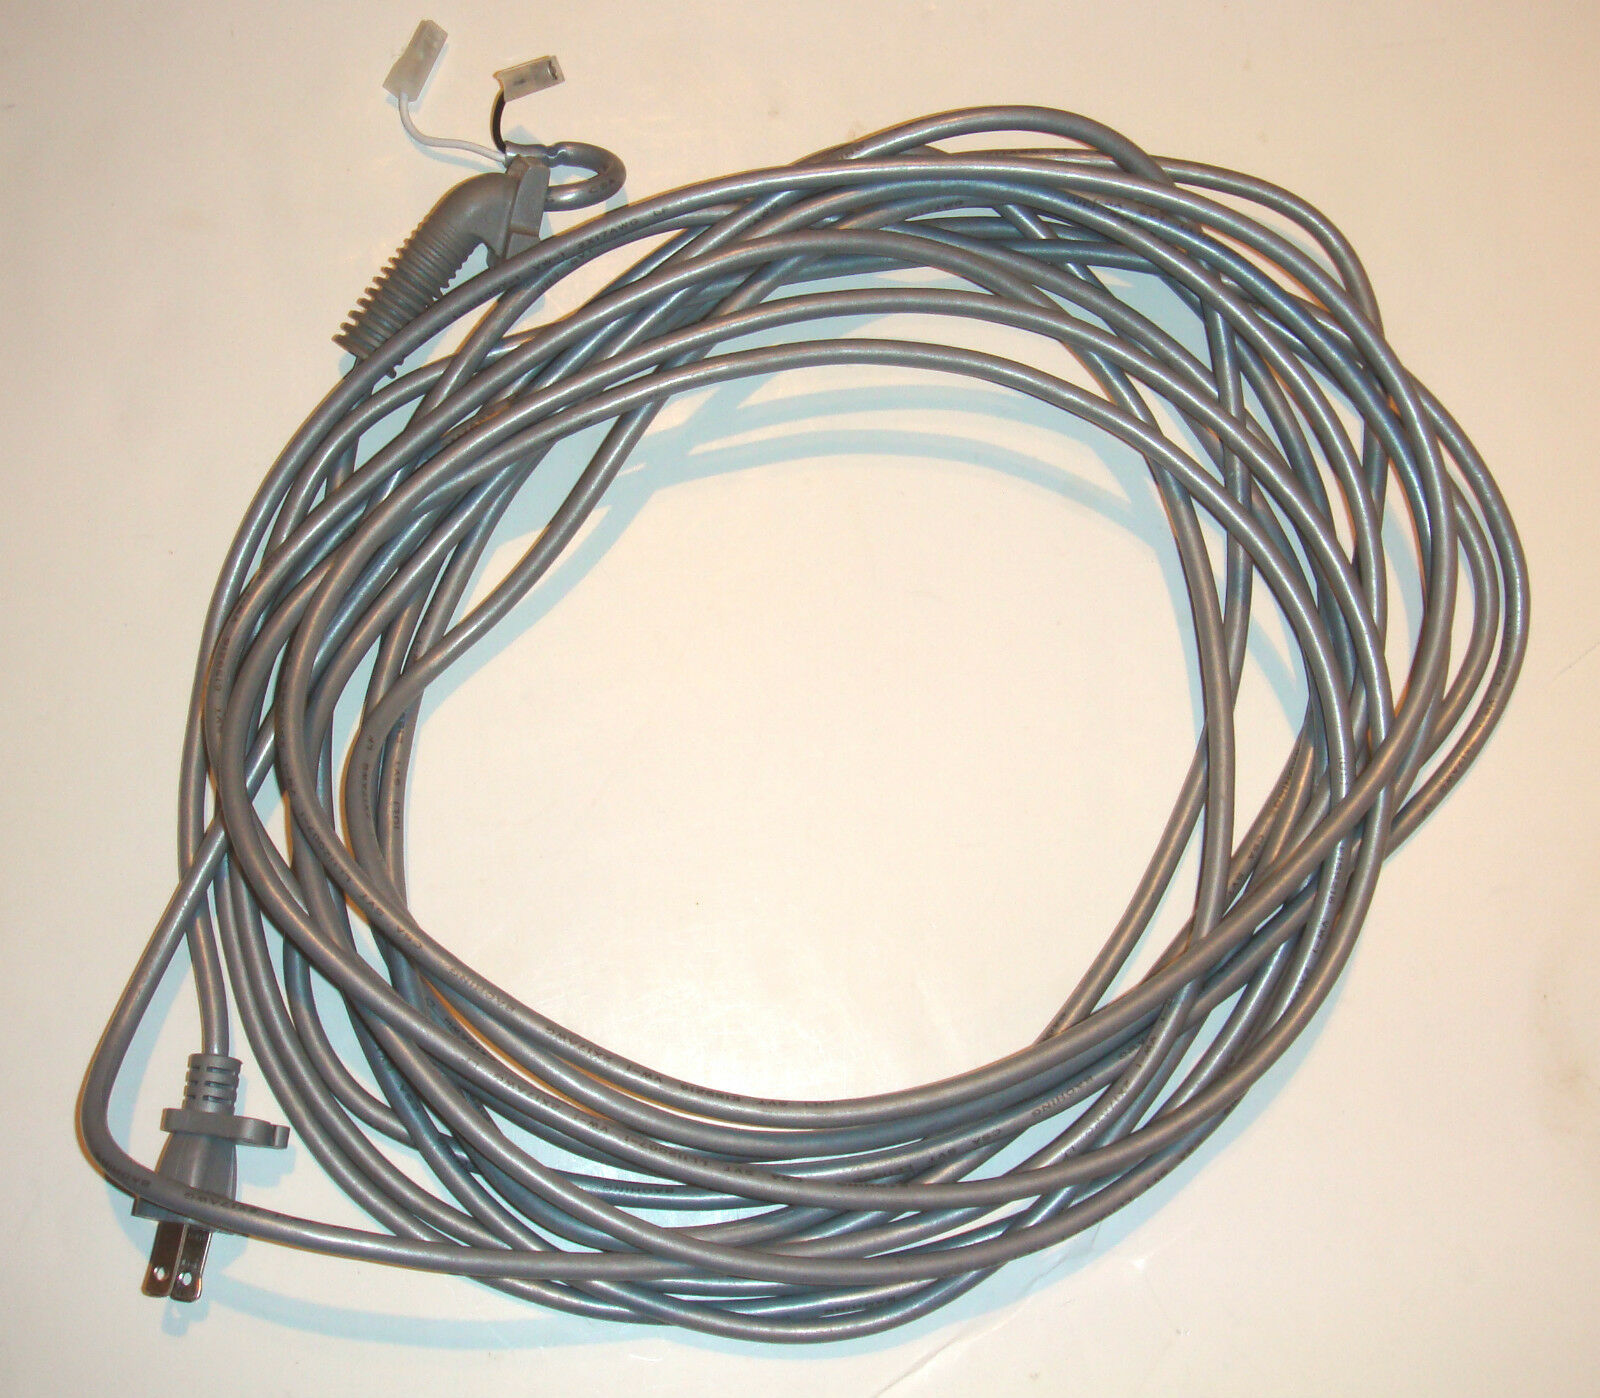 This Dyson DC07 power cord is an OEM Dyson part from a DC07 upright